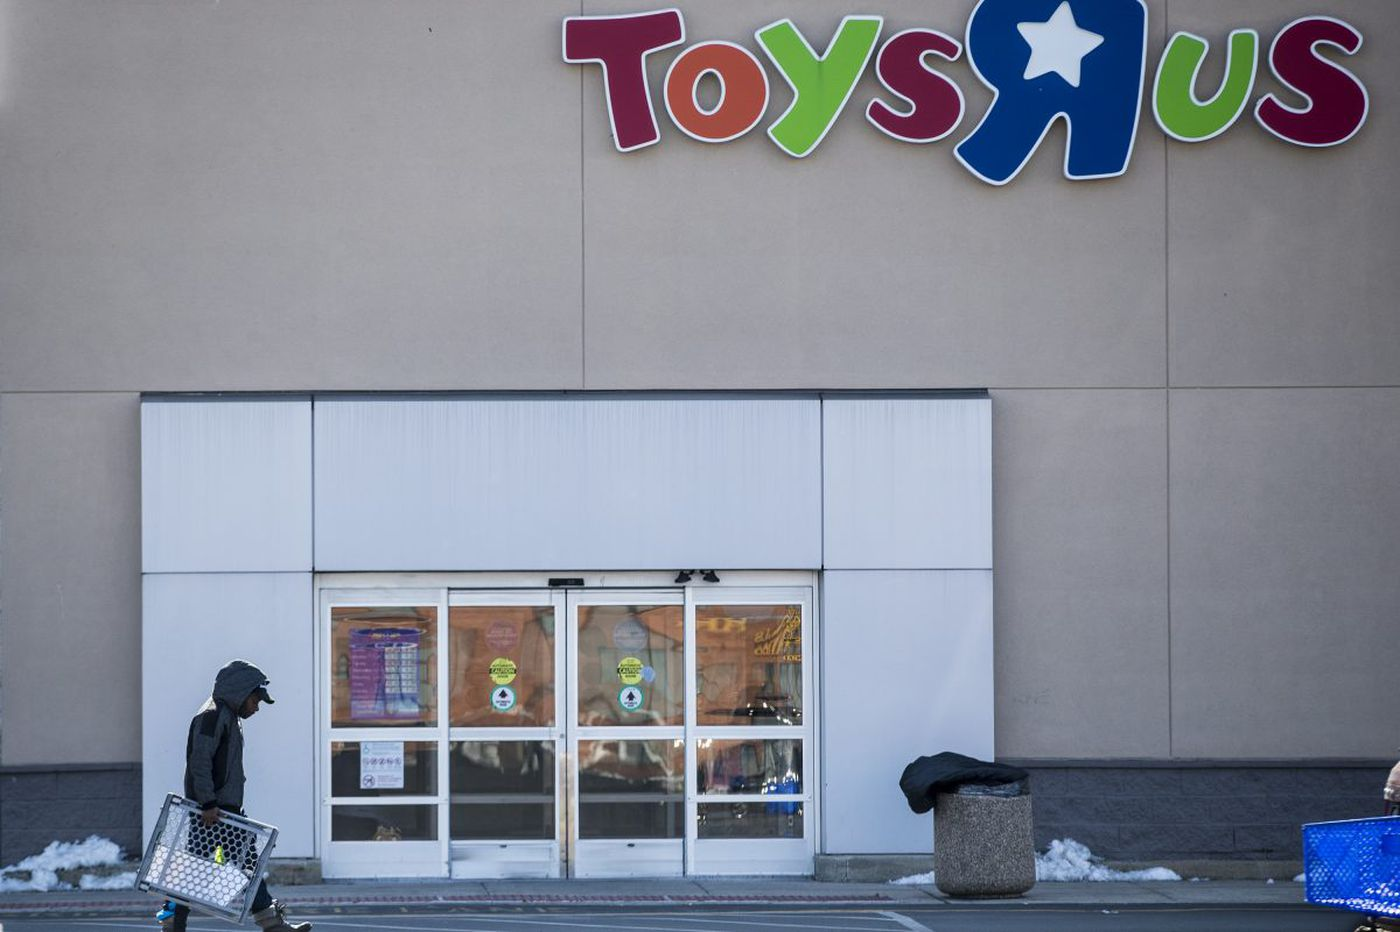 Toys R Us closures will whack retail landlords already smarting from big-box tenant losses